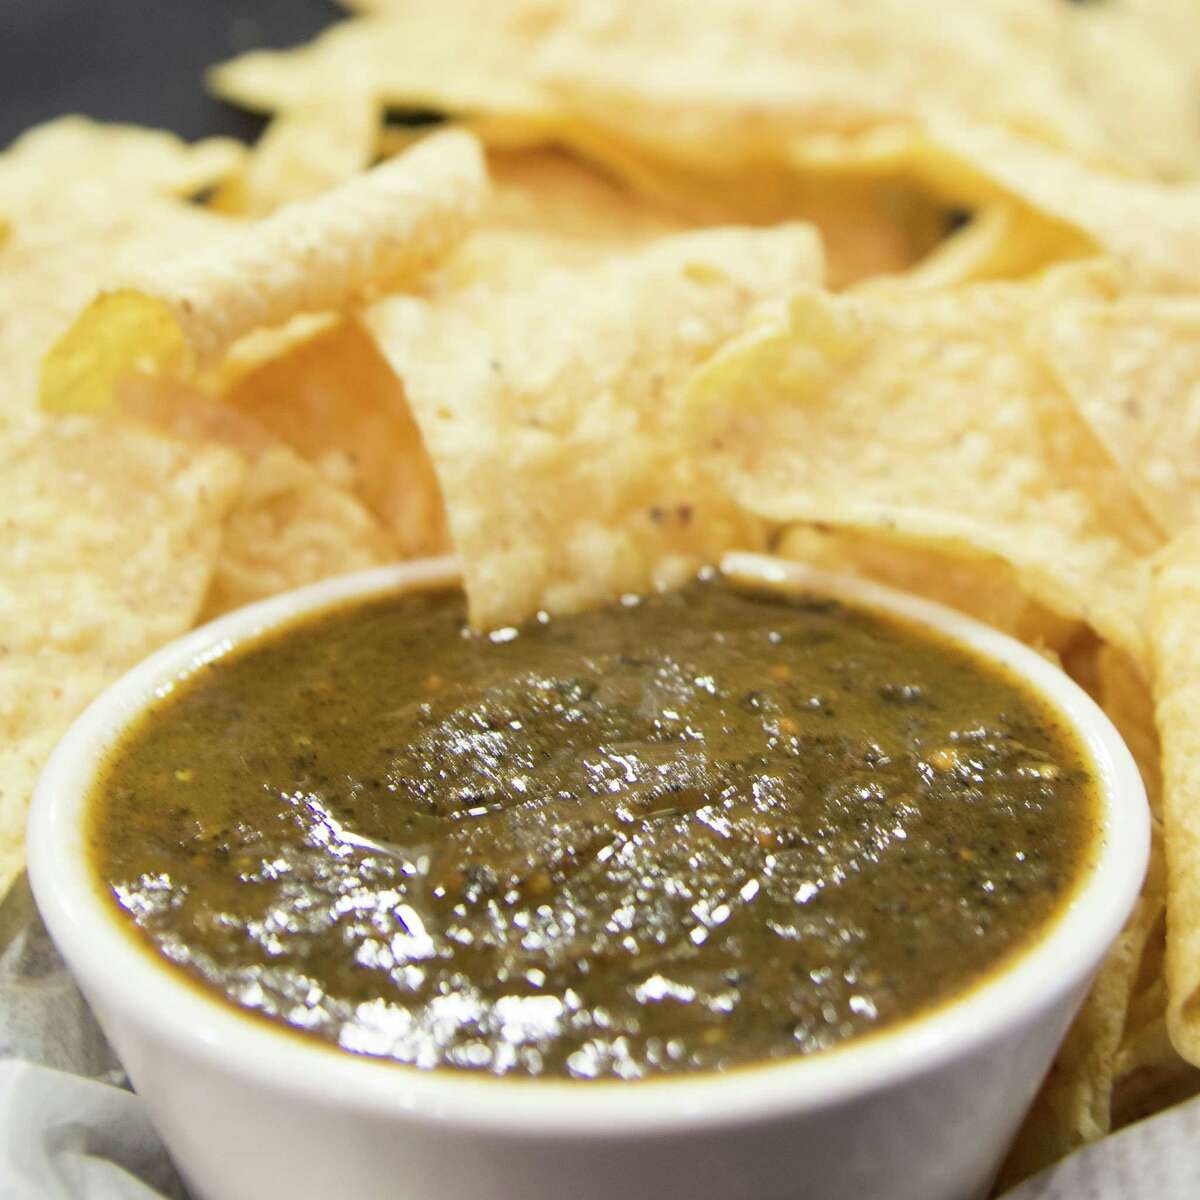 Salsa: Tiago's Cabo Grille 8403 Texas 15117711 Interstate 10